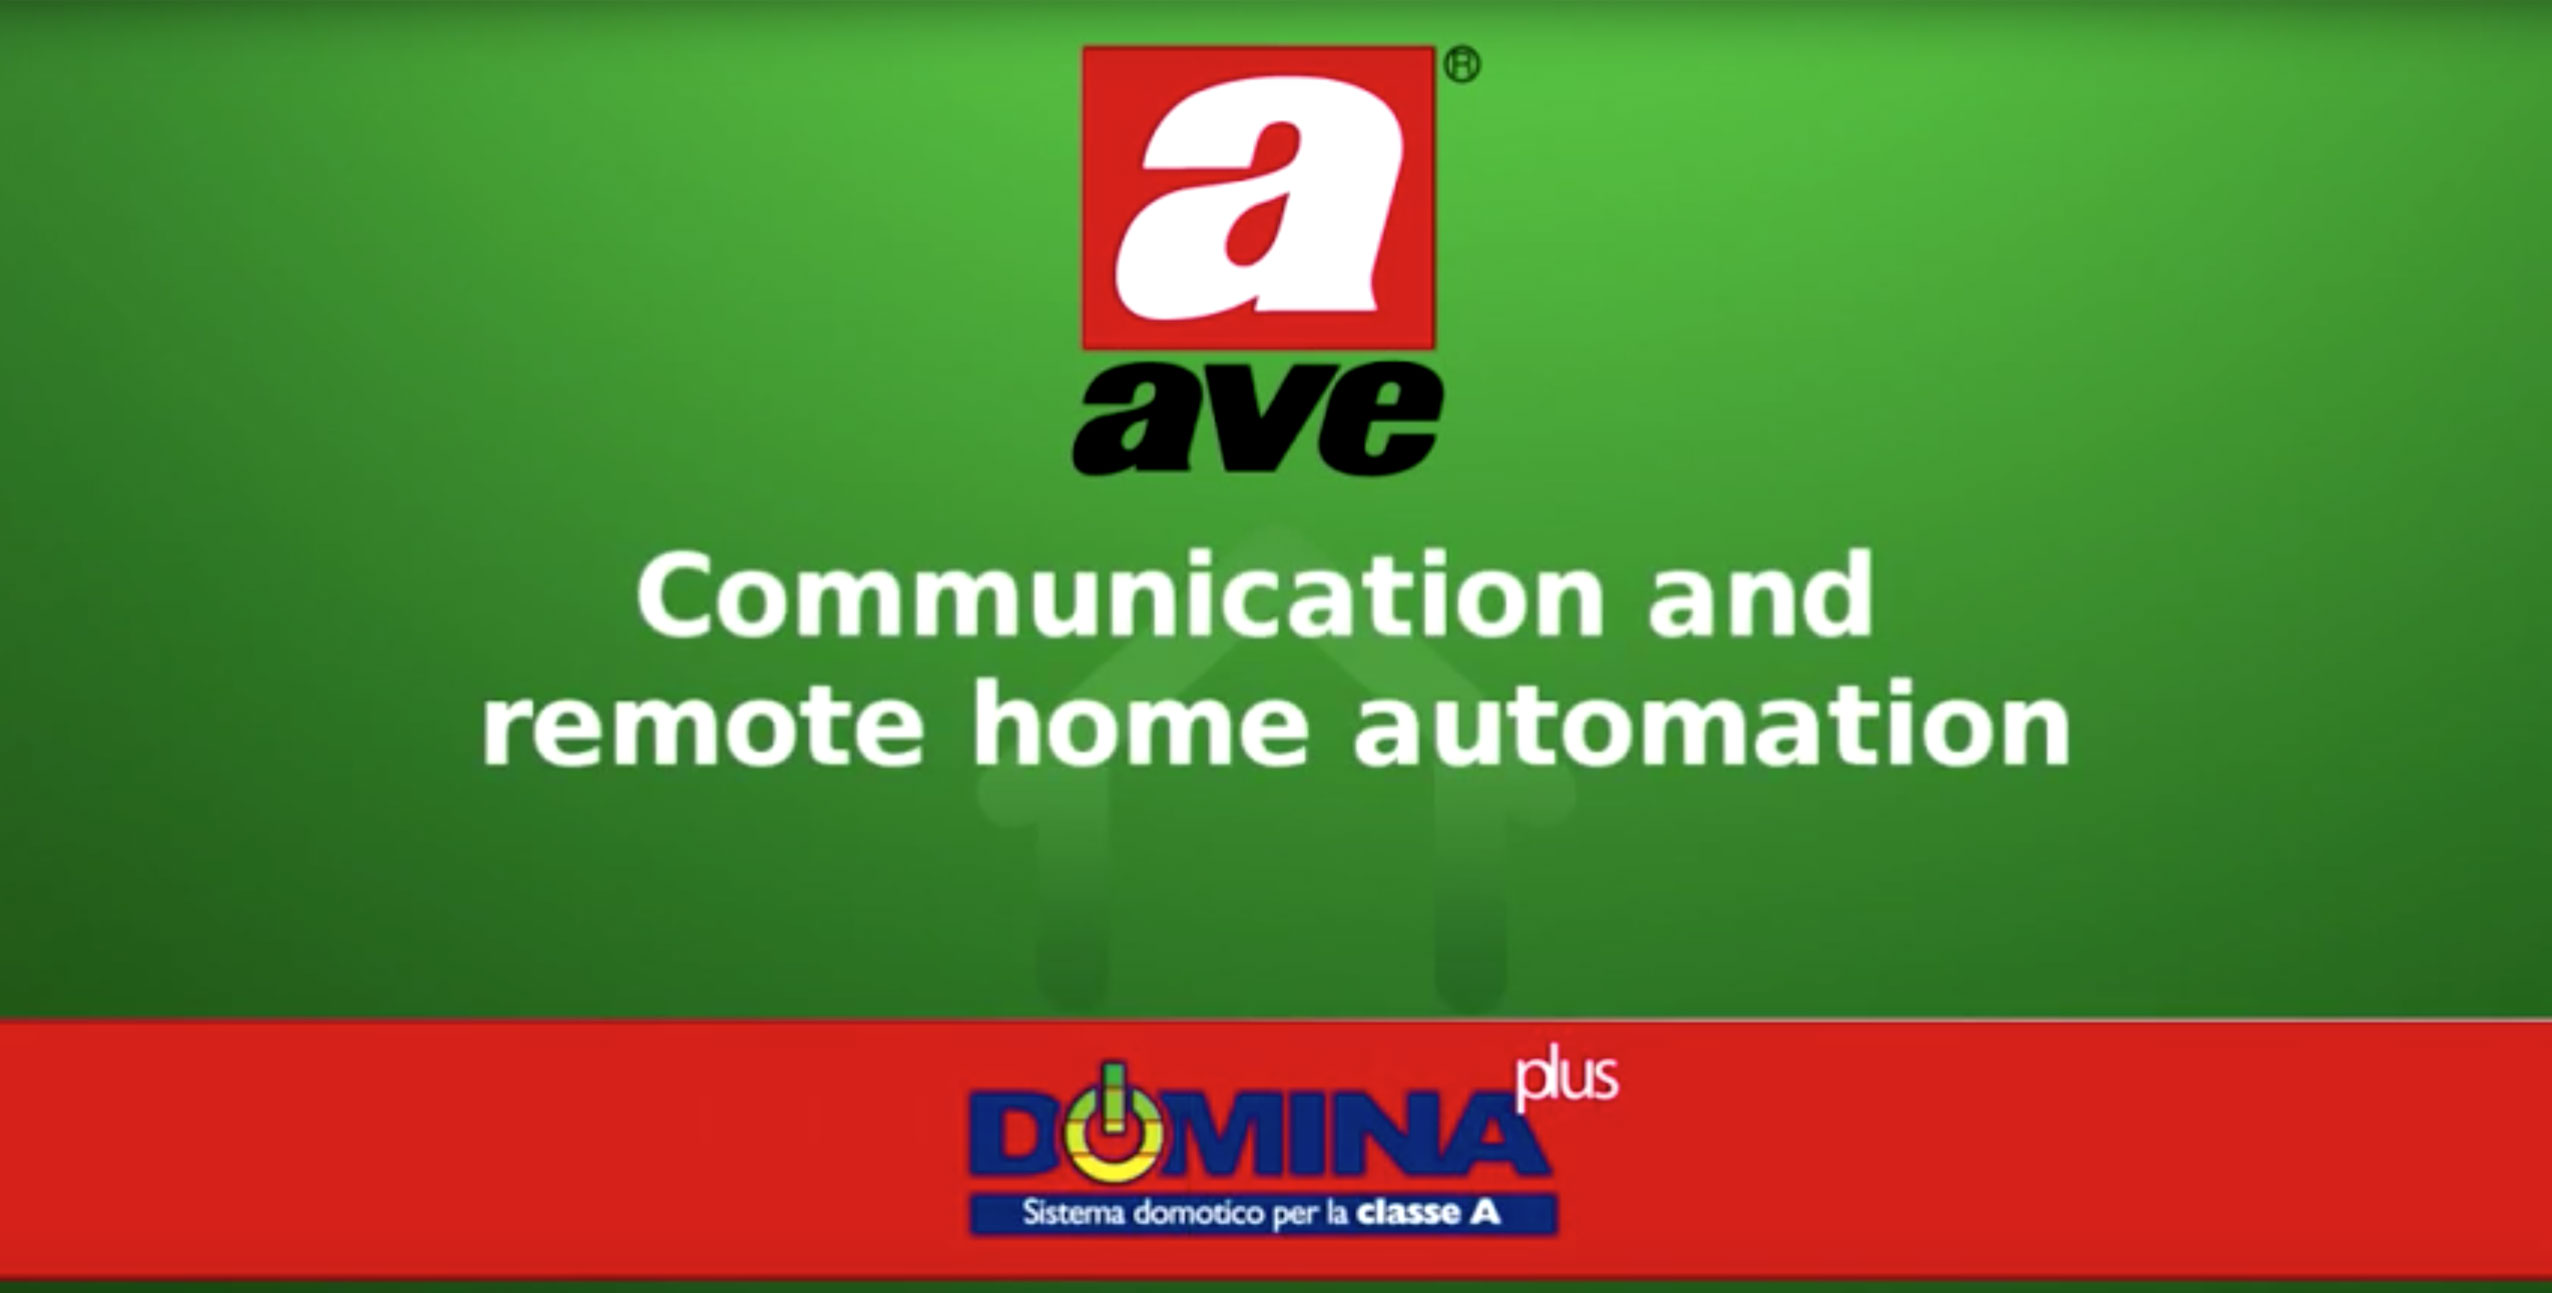 Video Home automation AVE DOMINA plus - Communication and remote home automation Video